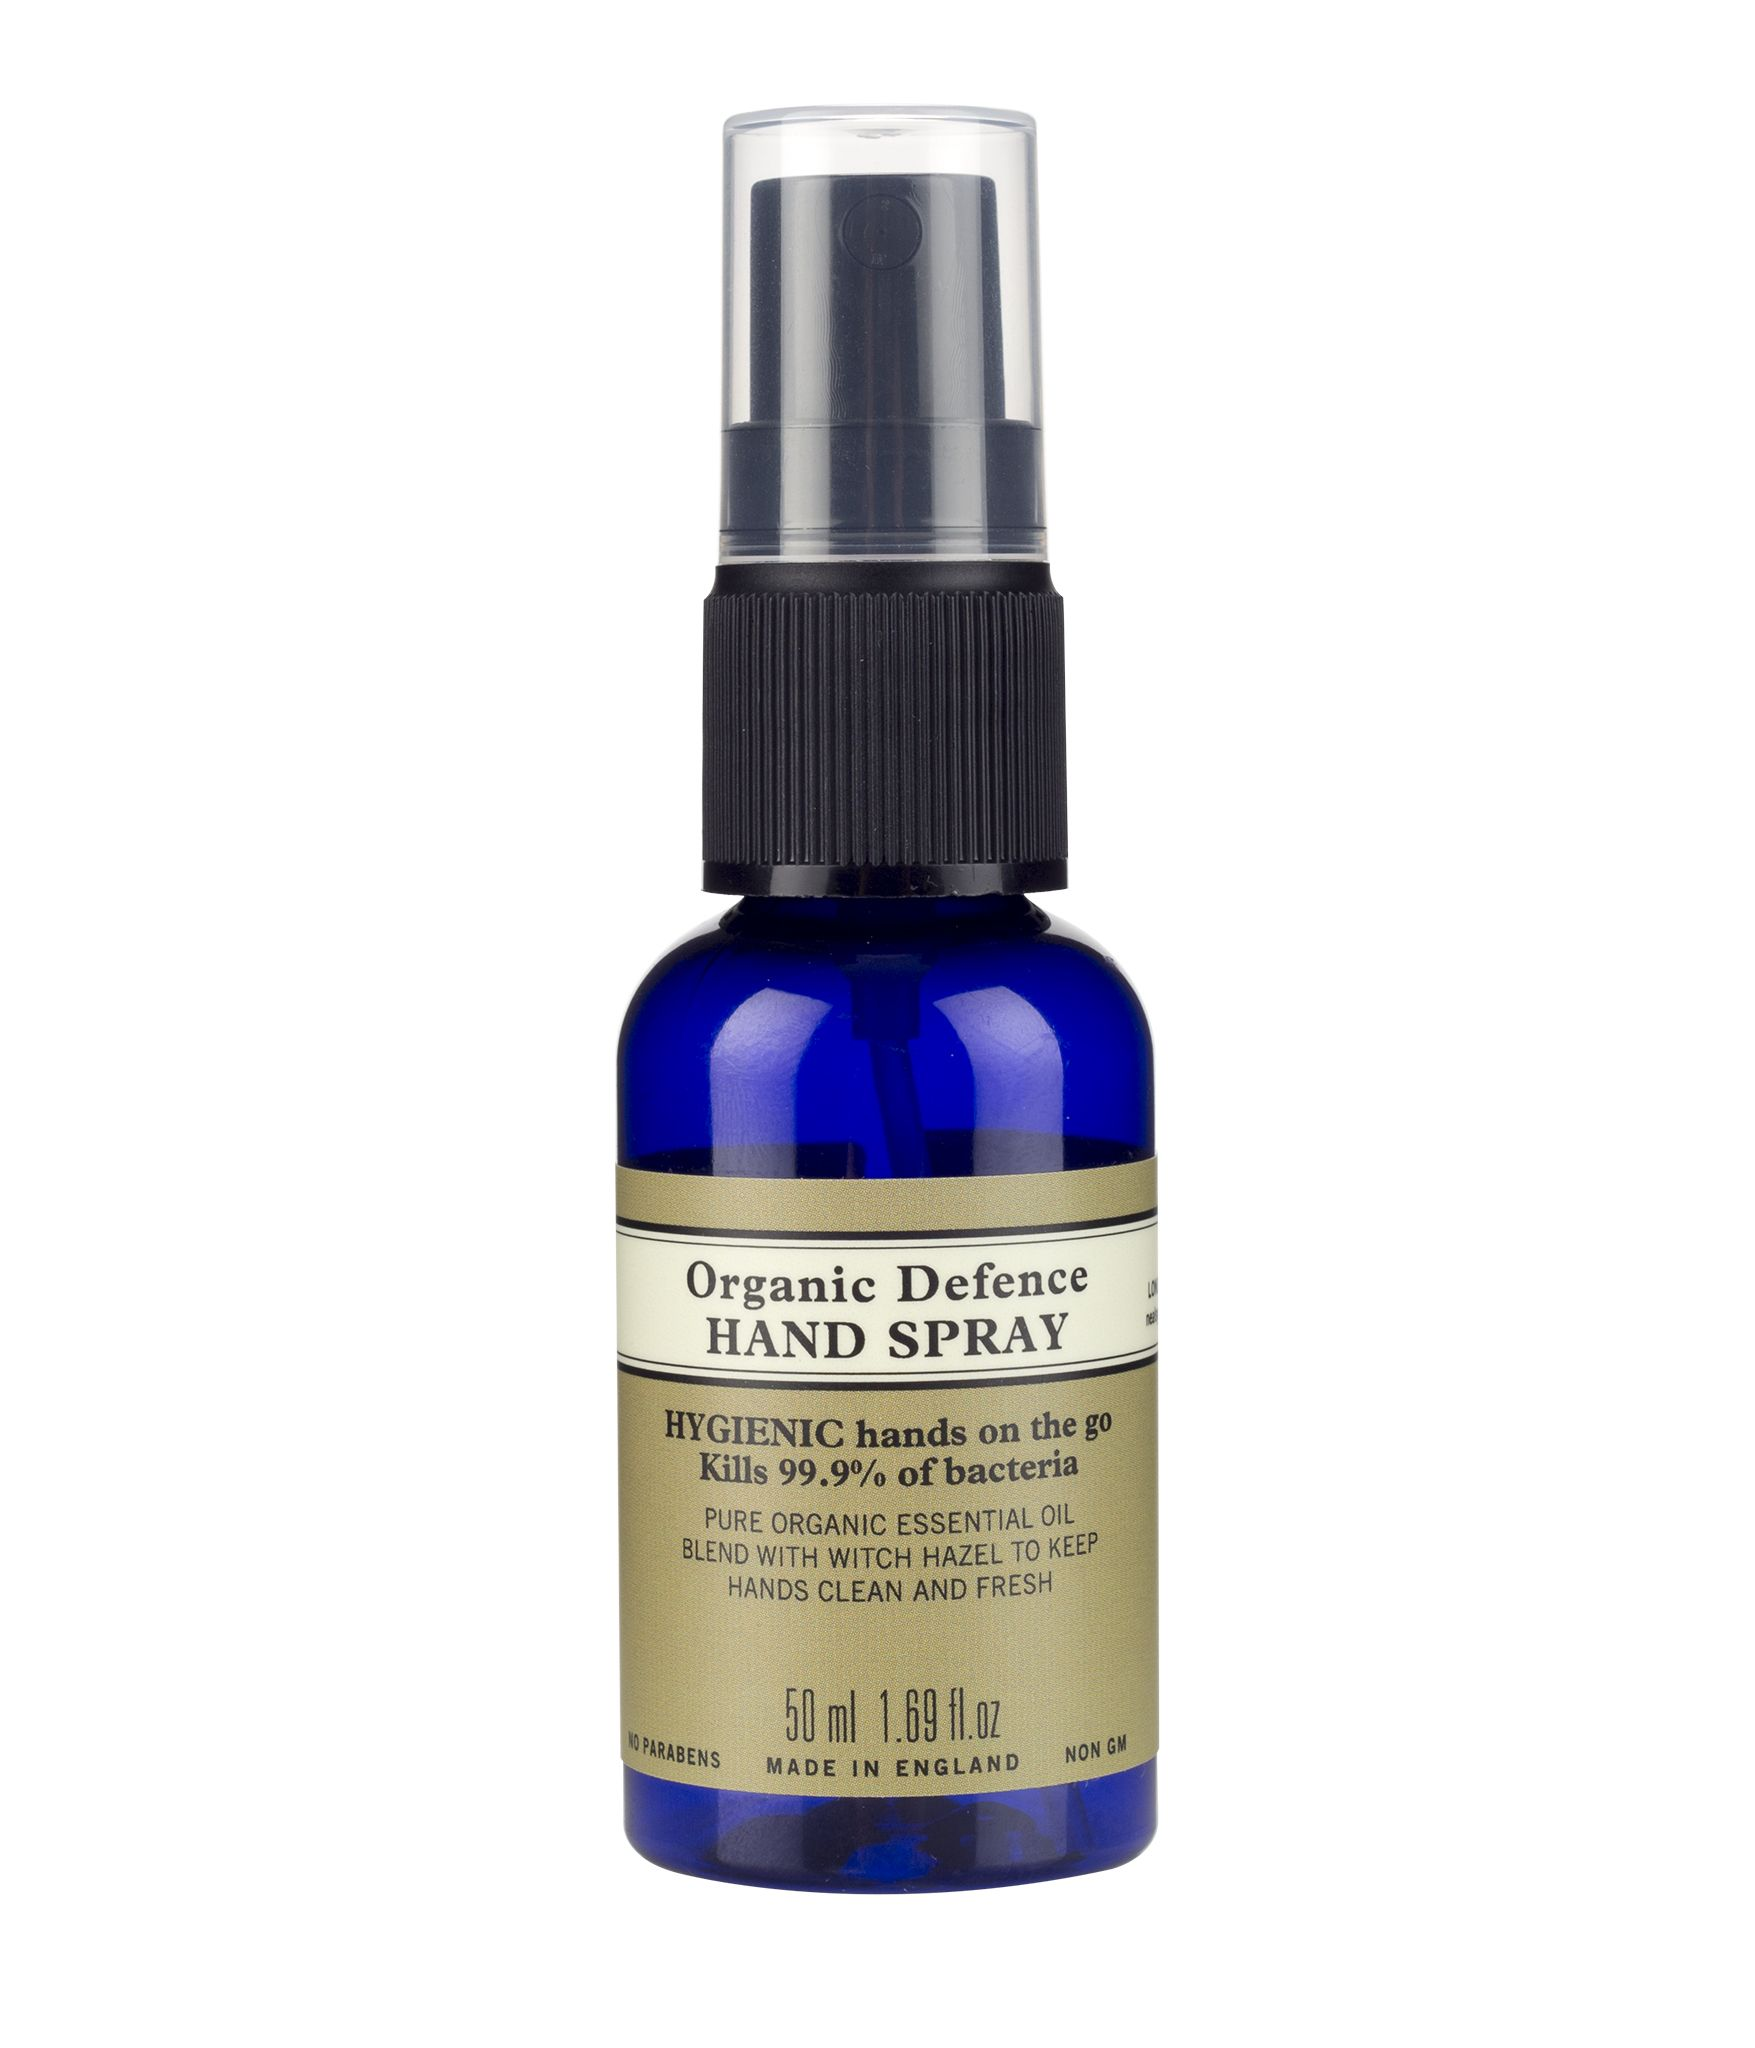 Organic Defence Hand Spray 50ml Organic Essential Oils Neals